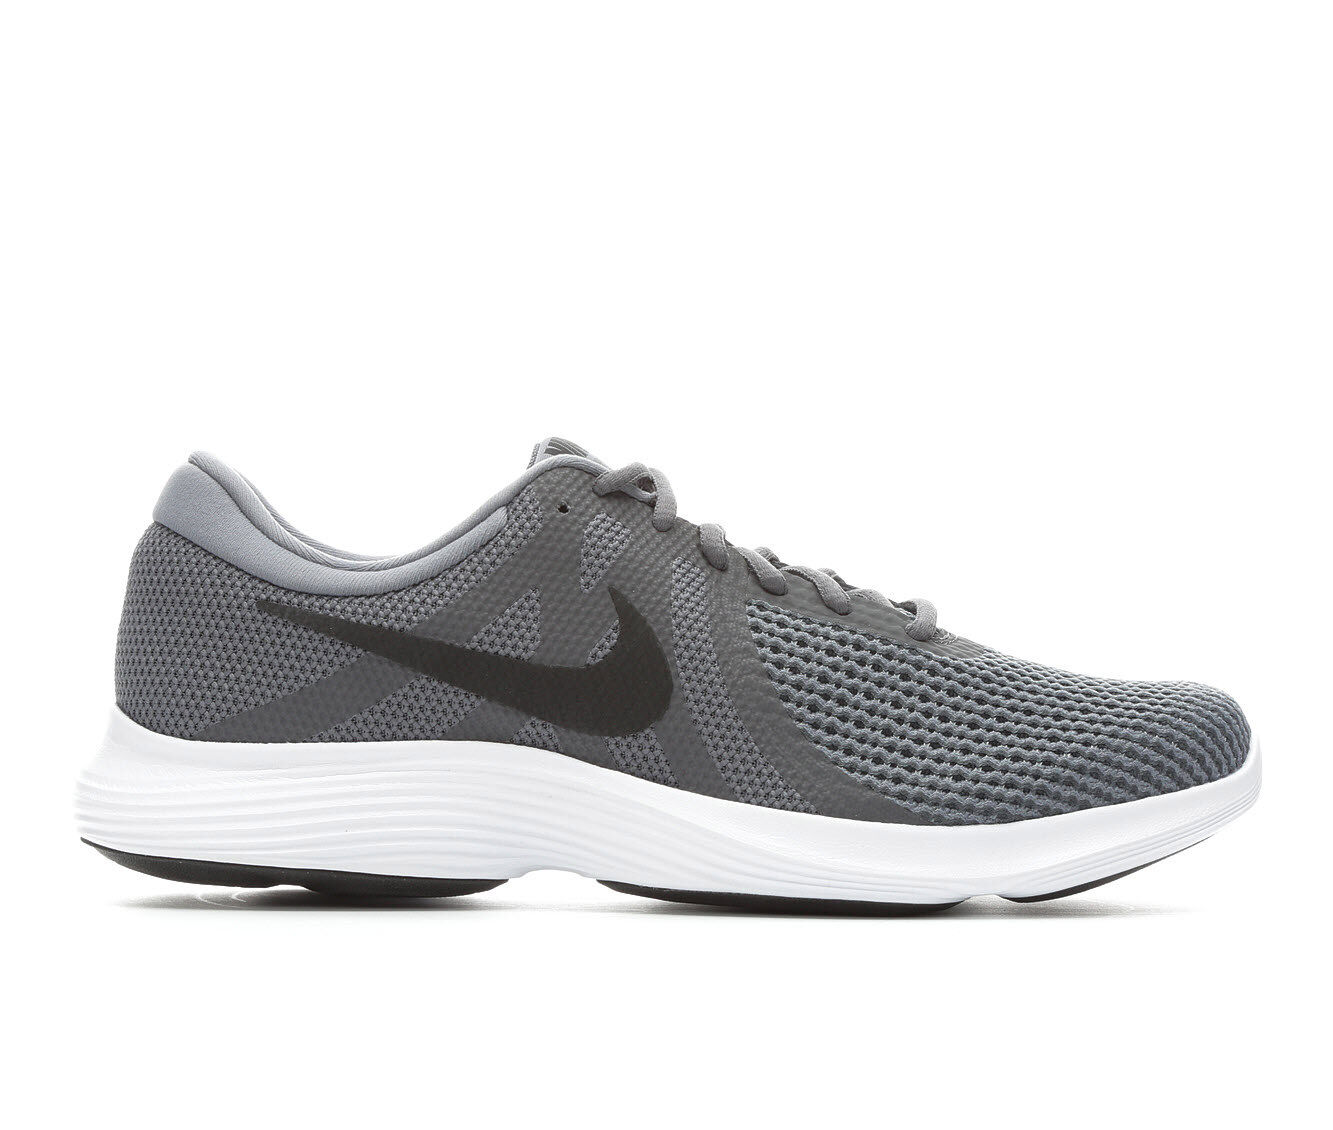 100% quality materials Men's Nike Revolution 4 Running Shoes Gry/Blk/Wht 010